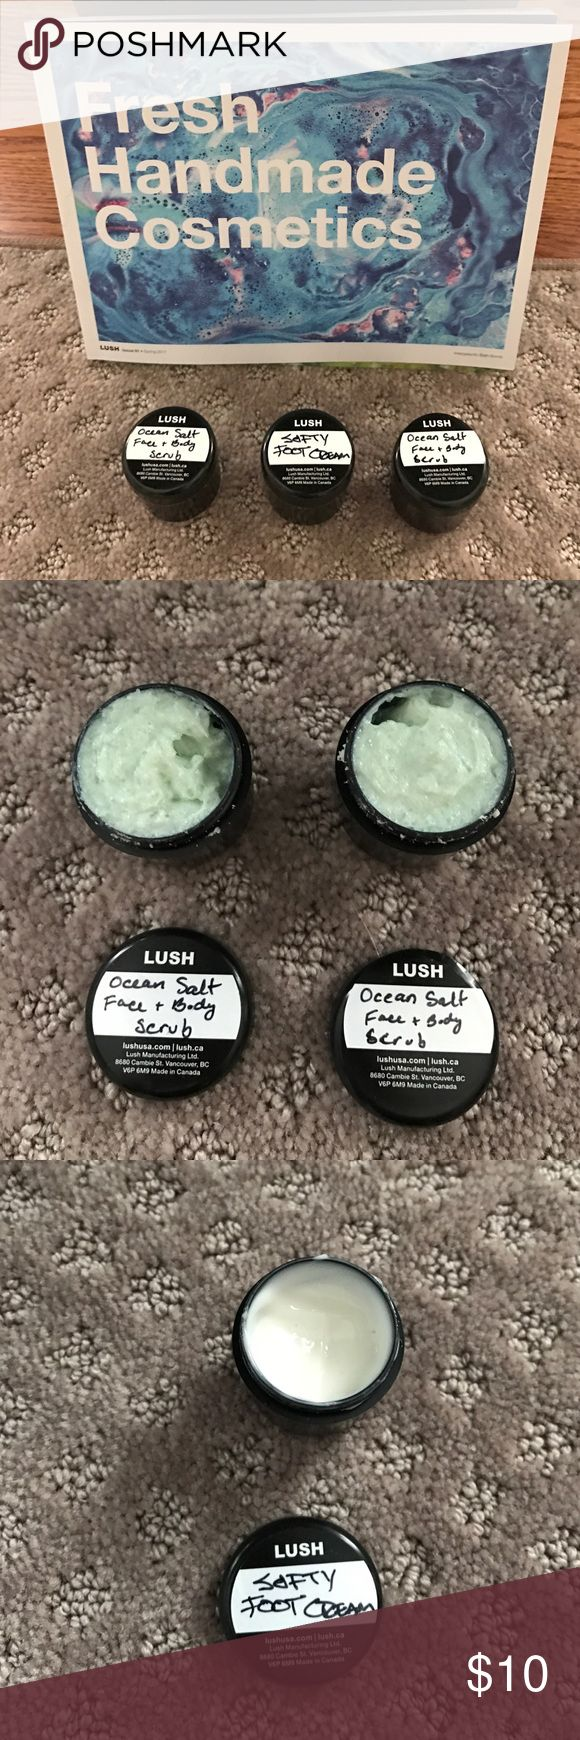 "LUSH Body Cleansers LUSH ""Sample"" Body Cleansers..bundle consist of 2 sample containers of Ocean Salt body and face scrub and 1 sample container of LUSH softy foot cream...never used. Full jars LUSH Makeup"